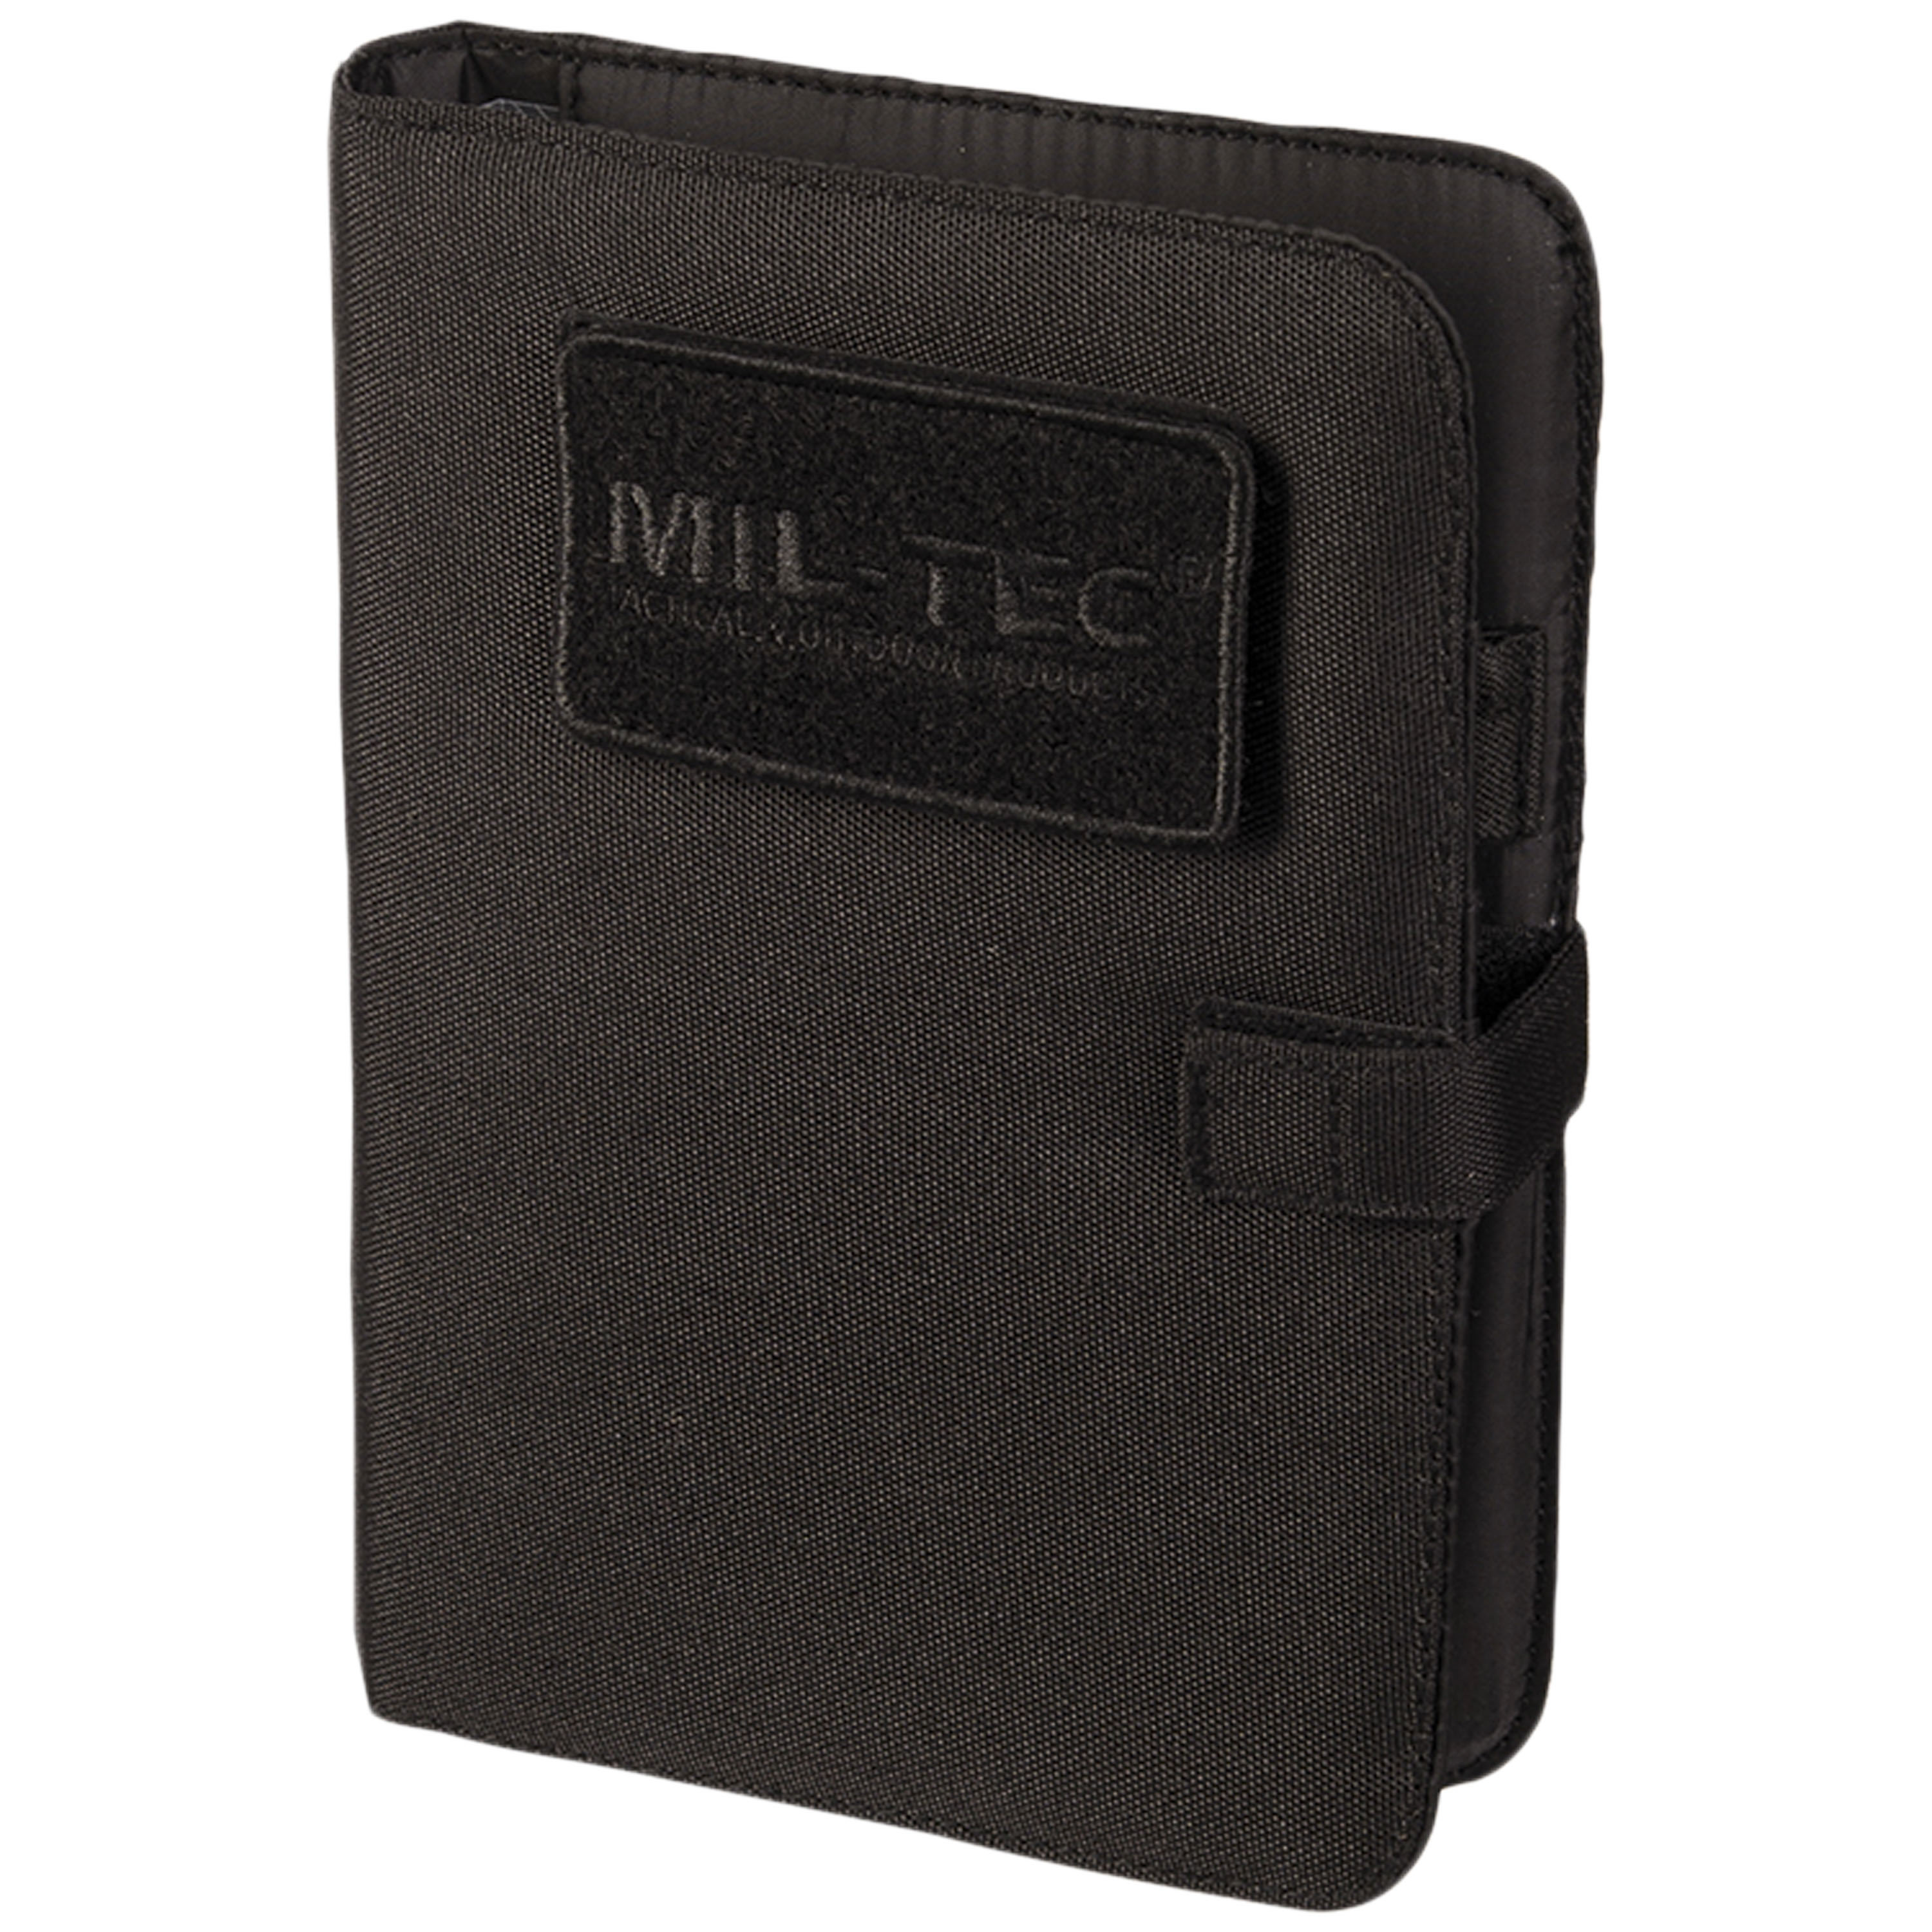 Tactical Notebook Small black